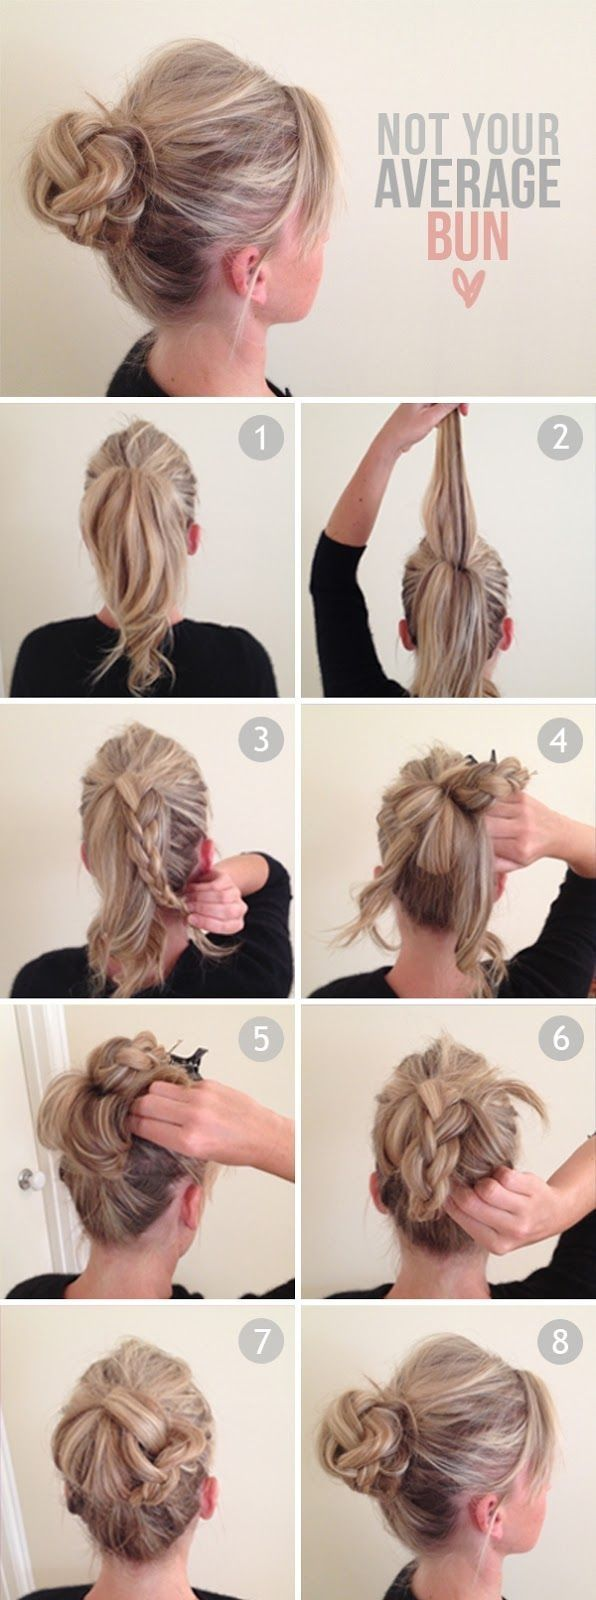 Top 10 hairstyle tutorials for this fall hair style top 10 top 10 hairstyle tutorials for this fall baditri Choice Image